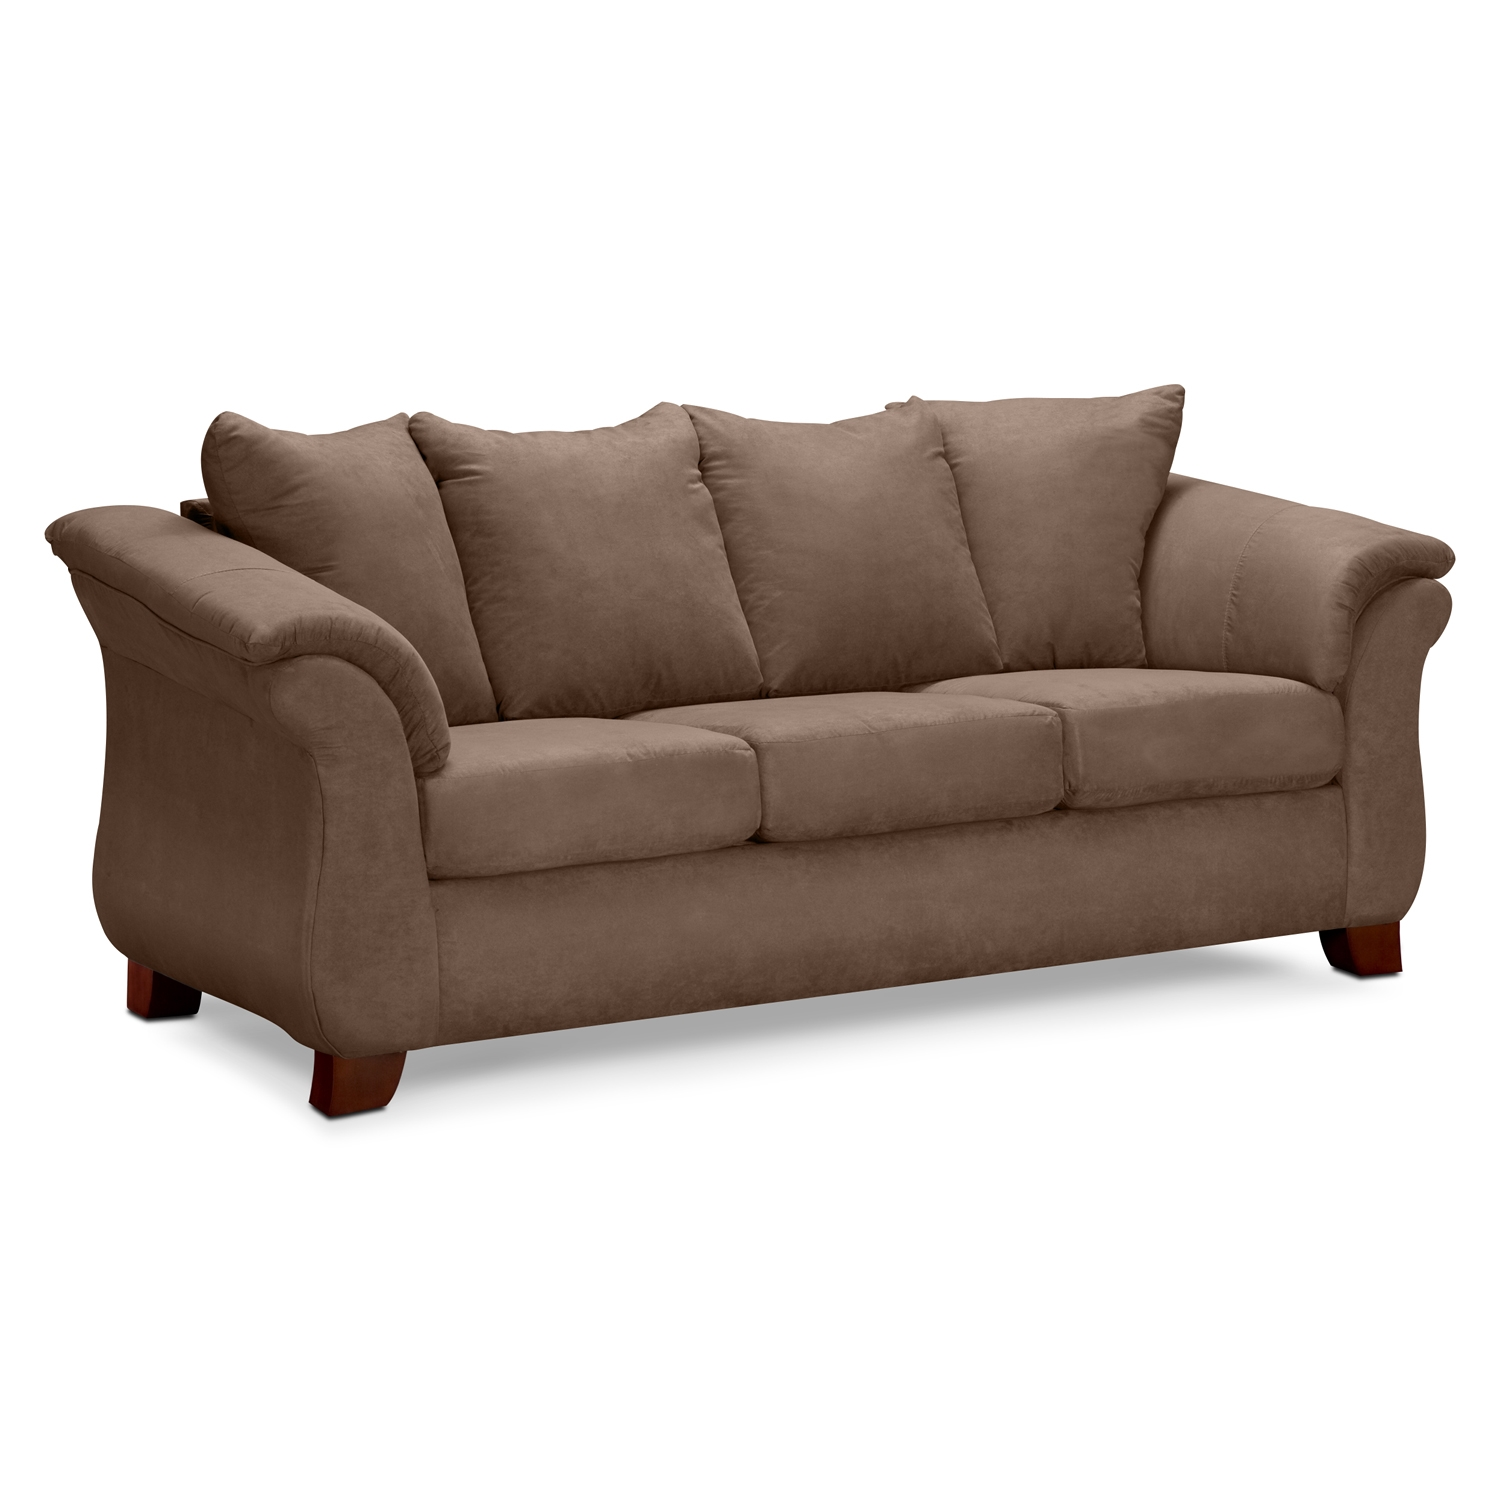 How to Properly Maintain and Care for Your Household Cushions